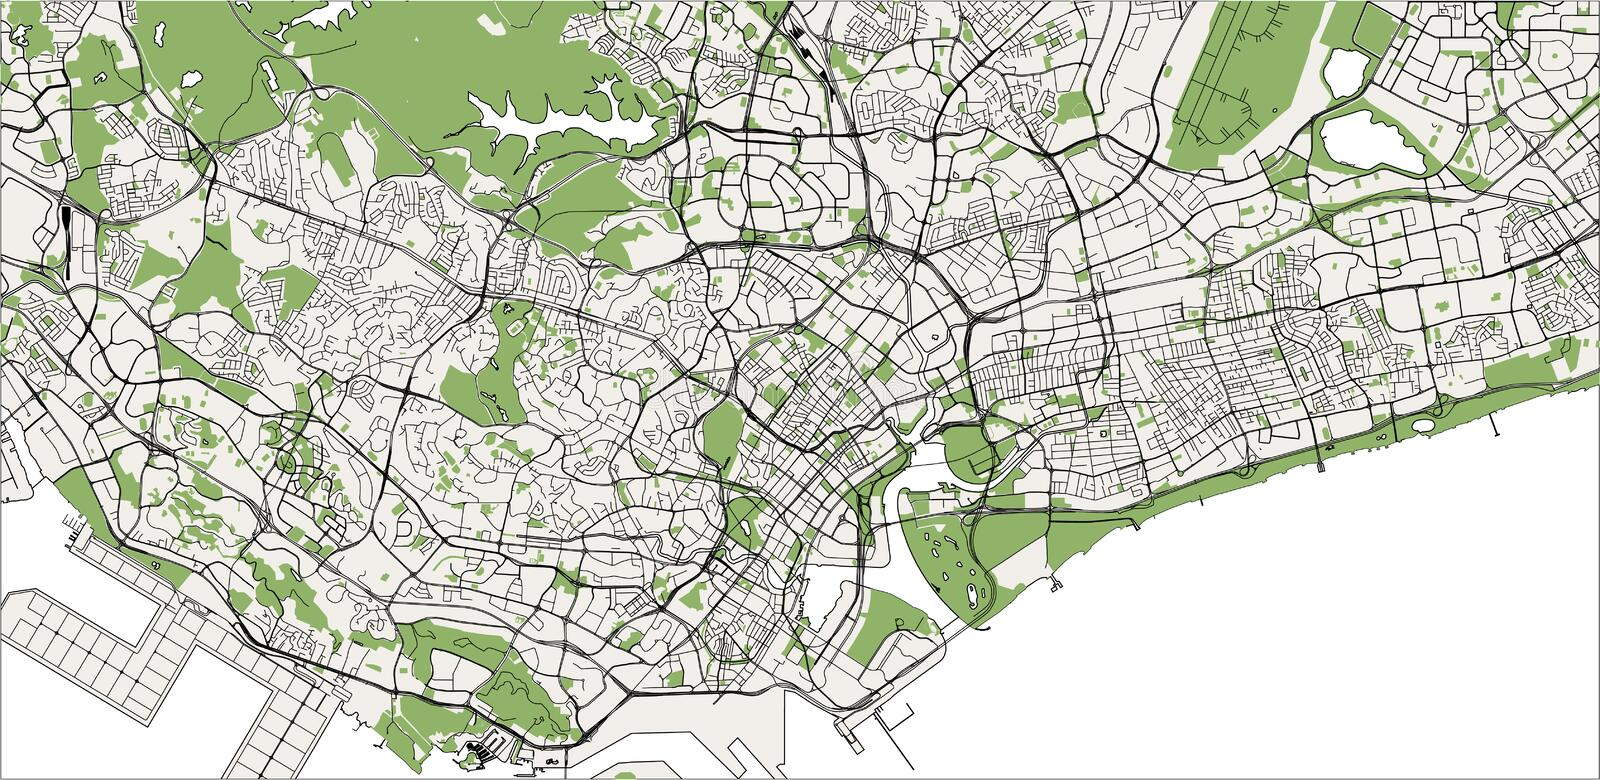 Map of the city of Singapore, Republic of Singapore royalty free stock image